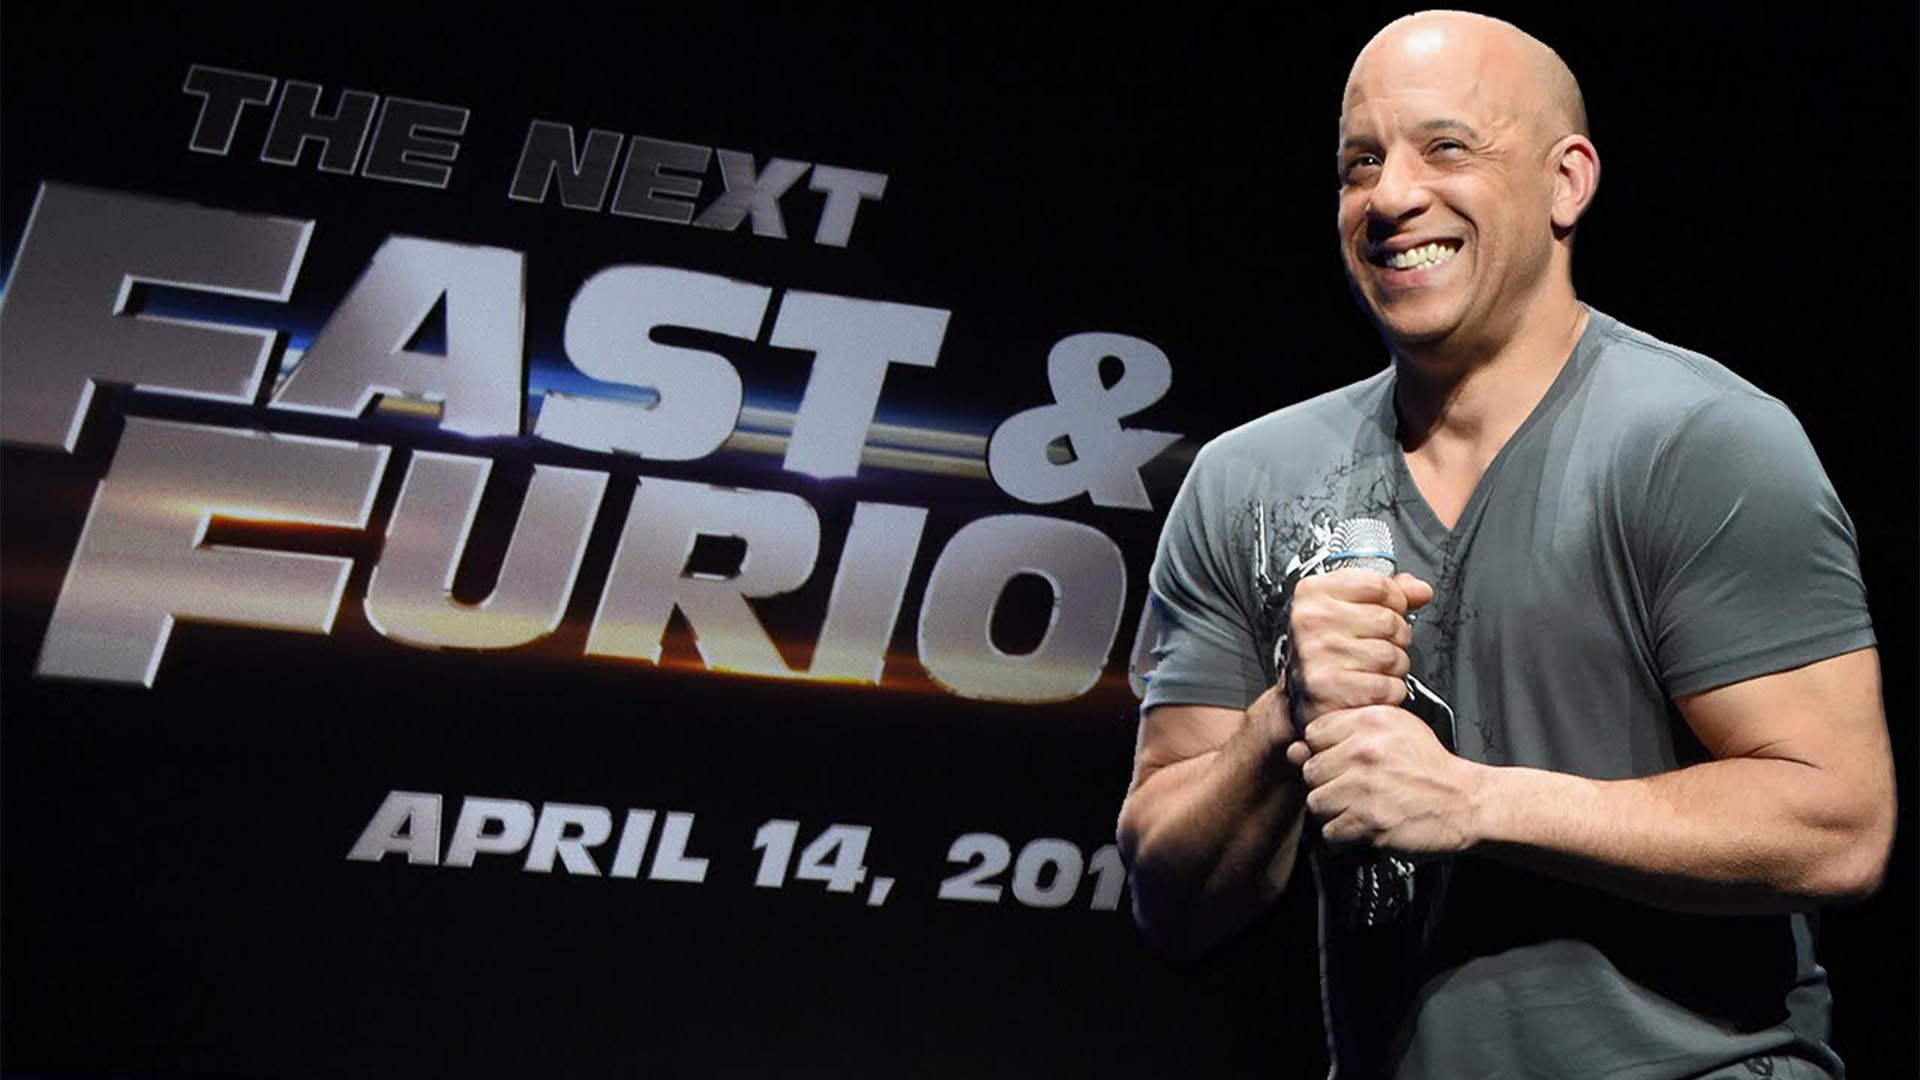 fast and furious 8 hd wallpapers free download. Black Bedroom Furniture Sets. Home Design Ideas